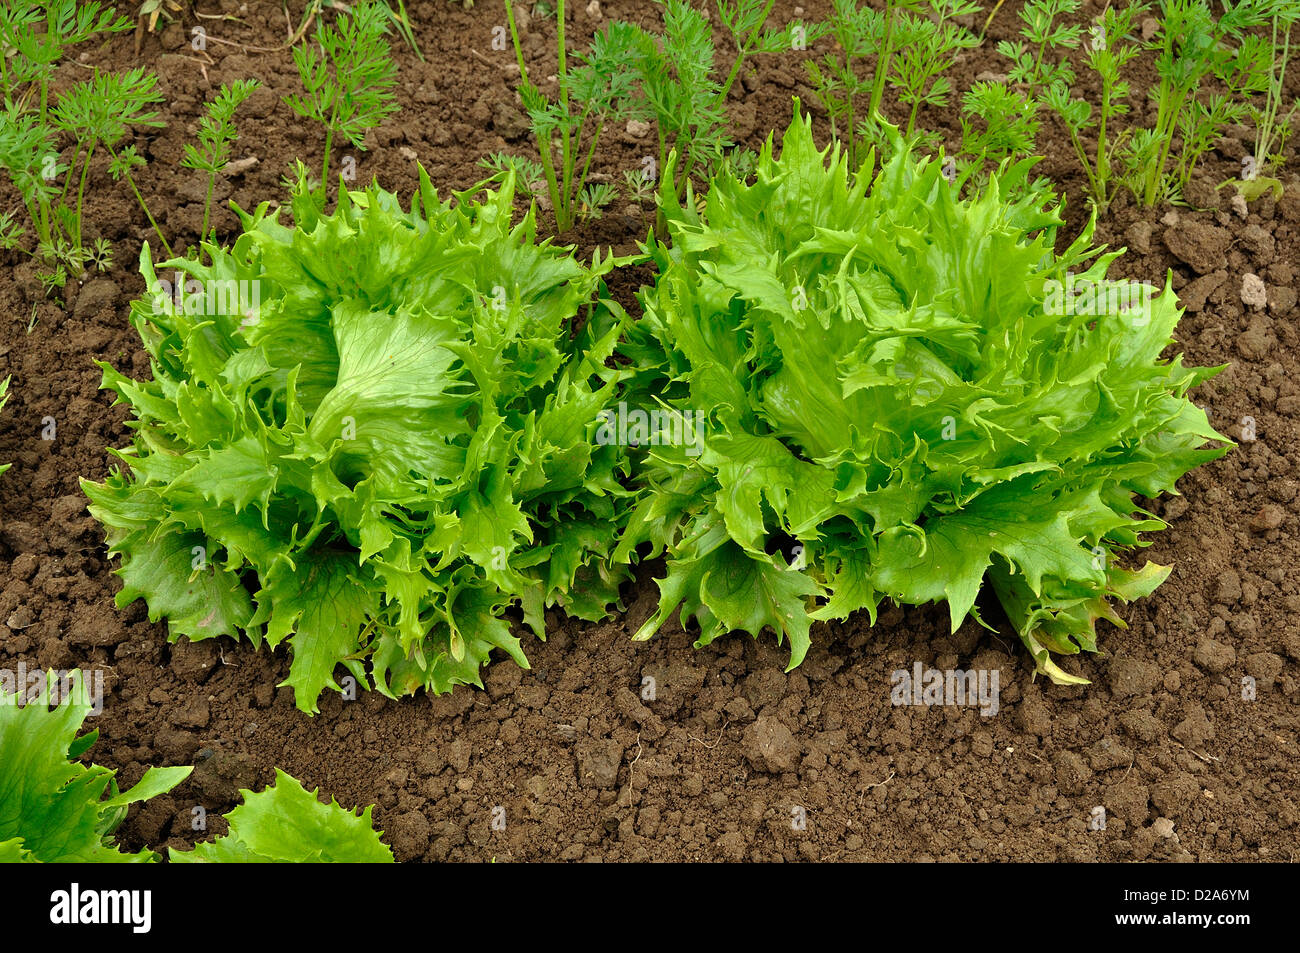 Batavia lettuce 39 reine des glaces 39 lactuca sativa growing in the stock photo royalty free - Salade reine des glaces ...